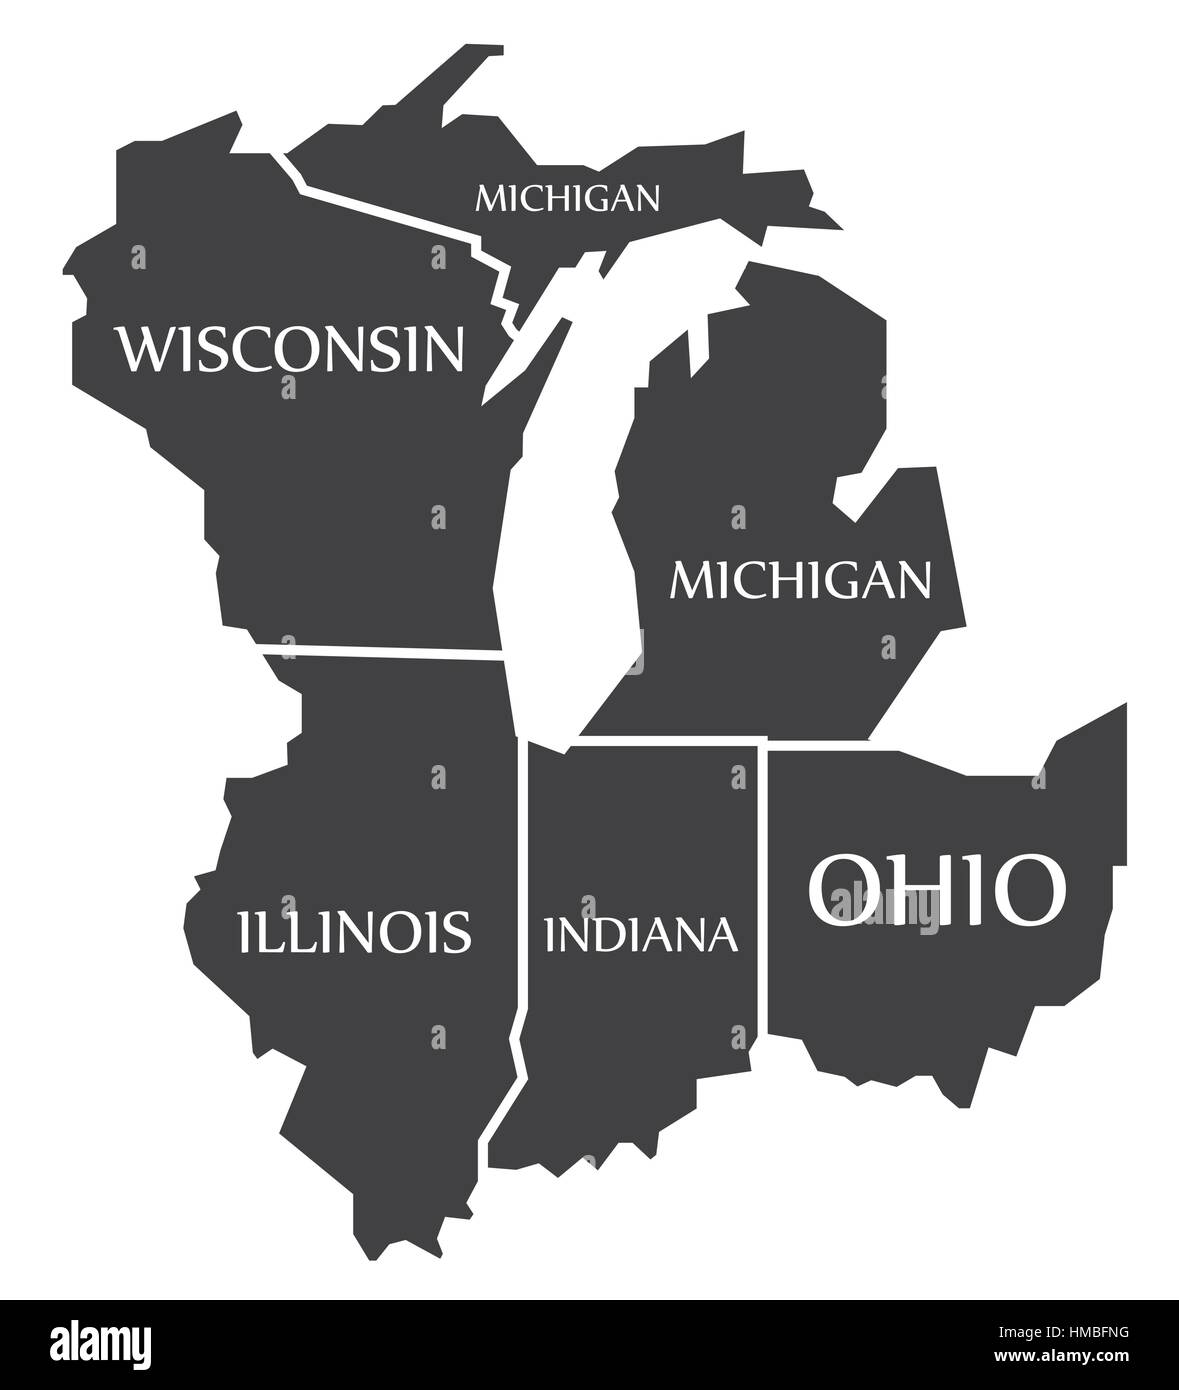 Michigan Wisconsin Illinois Indiana Ohio Map Labelled Black